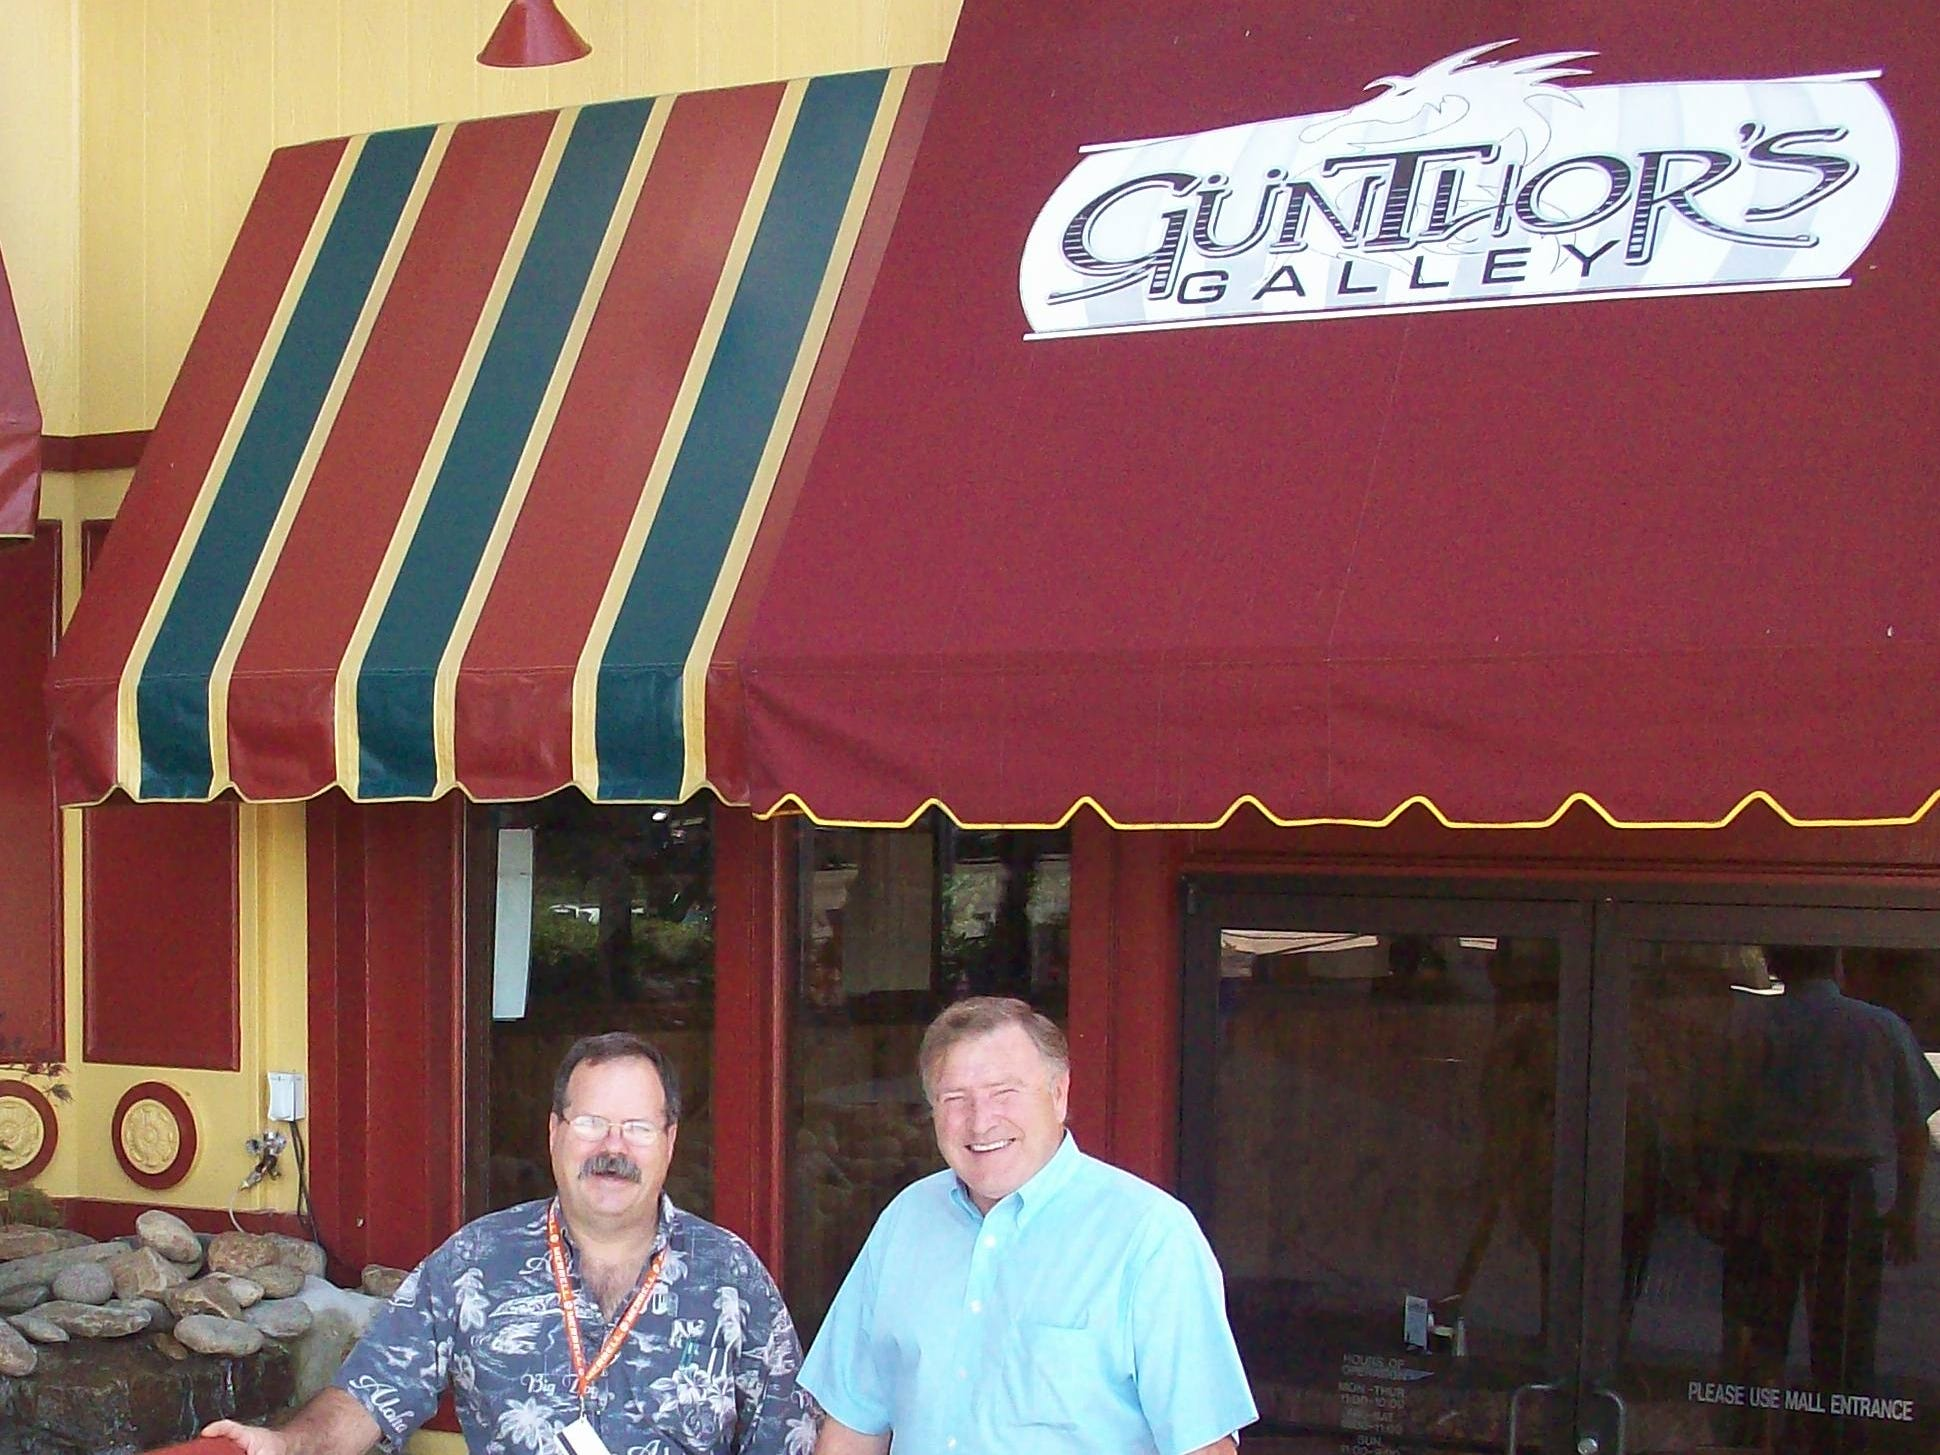 Co-owners Curtis Petree and John Candlish stand in front of Günthor's Galley in Knoxville Center Mall.M. Cannon